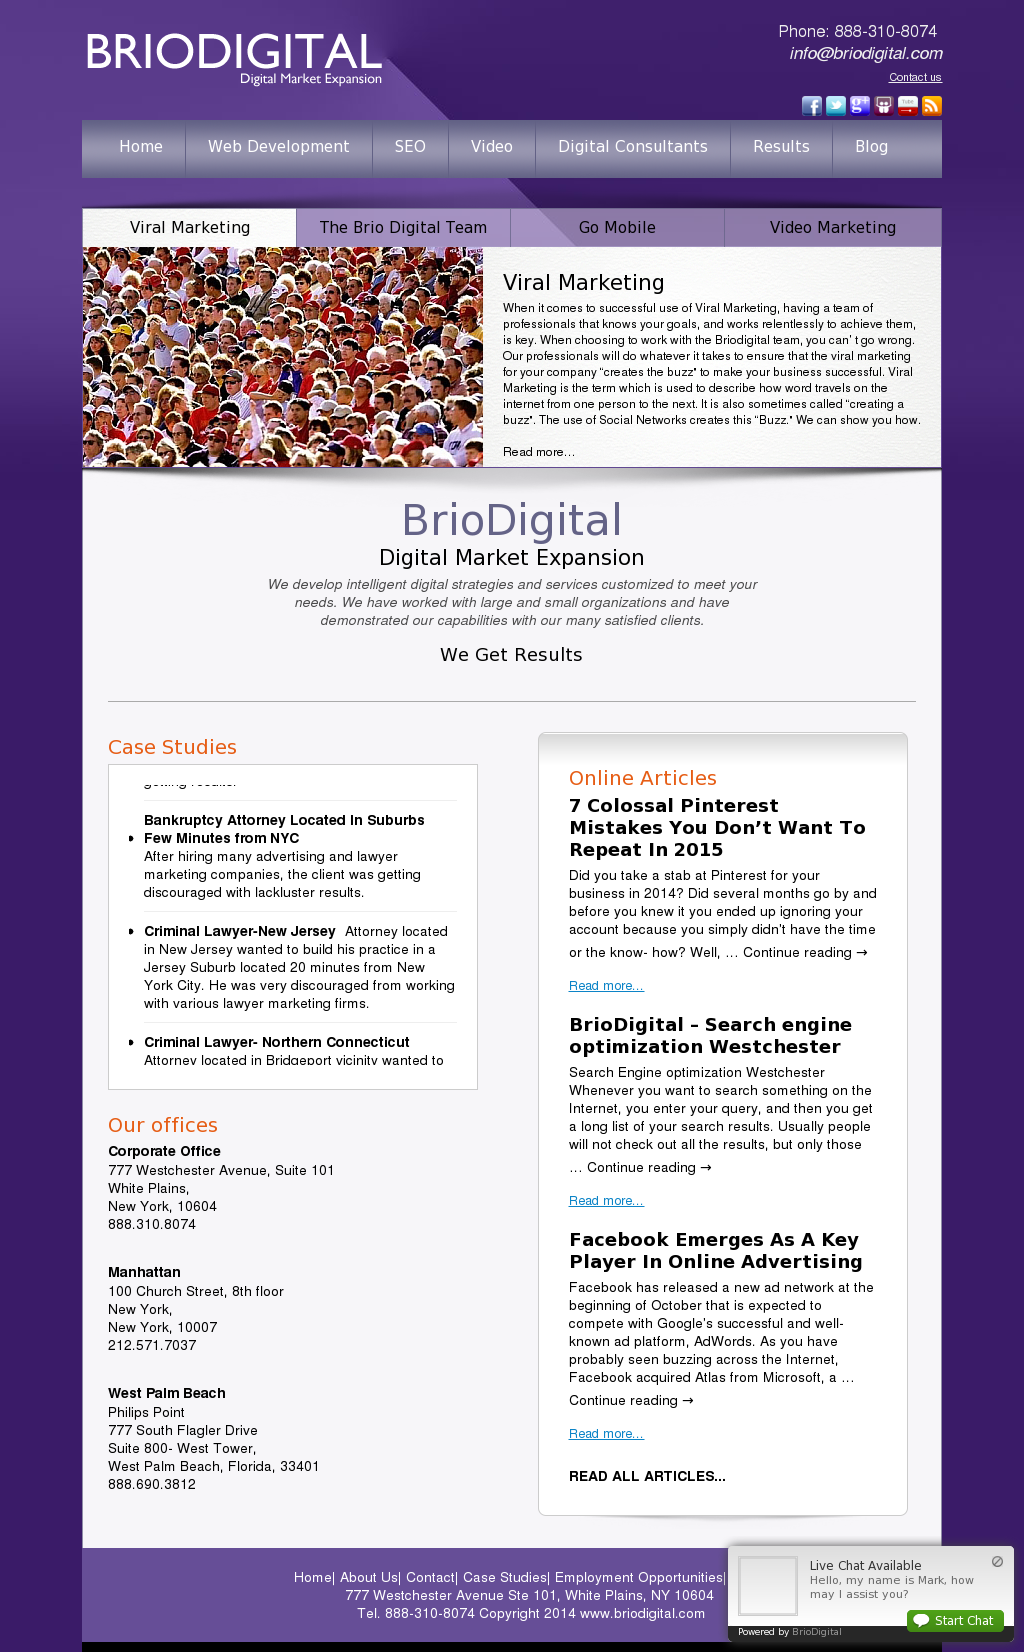 Brio Digital Competitors, Revenue and Employees - Owler